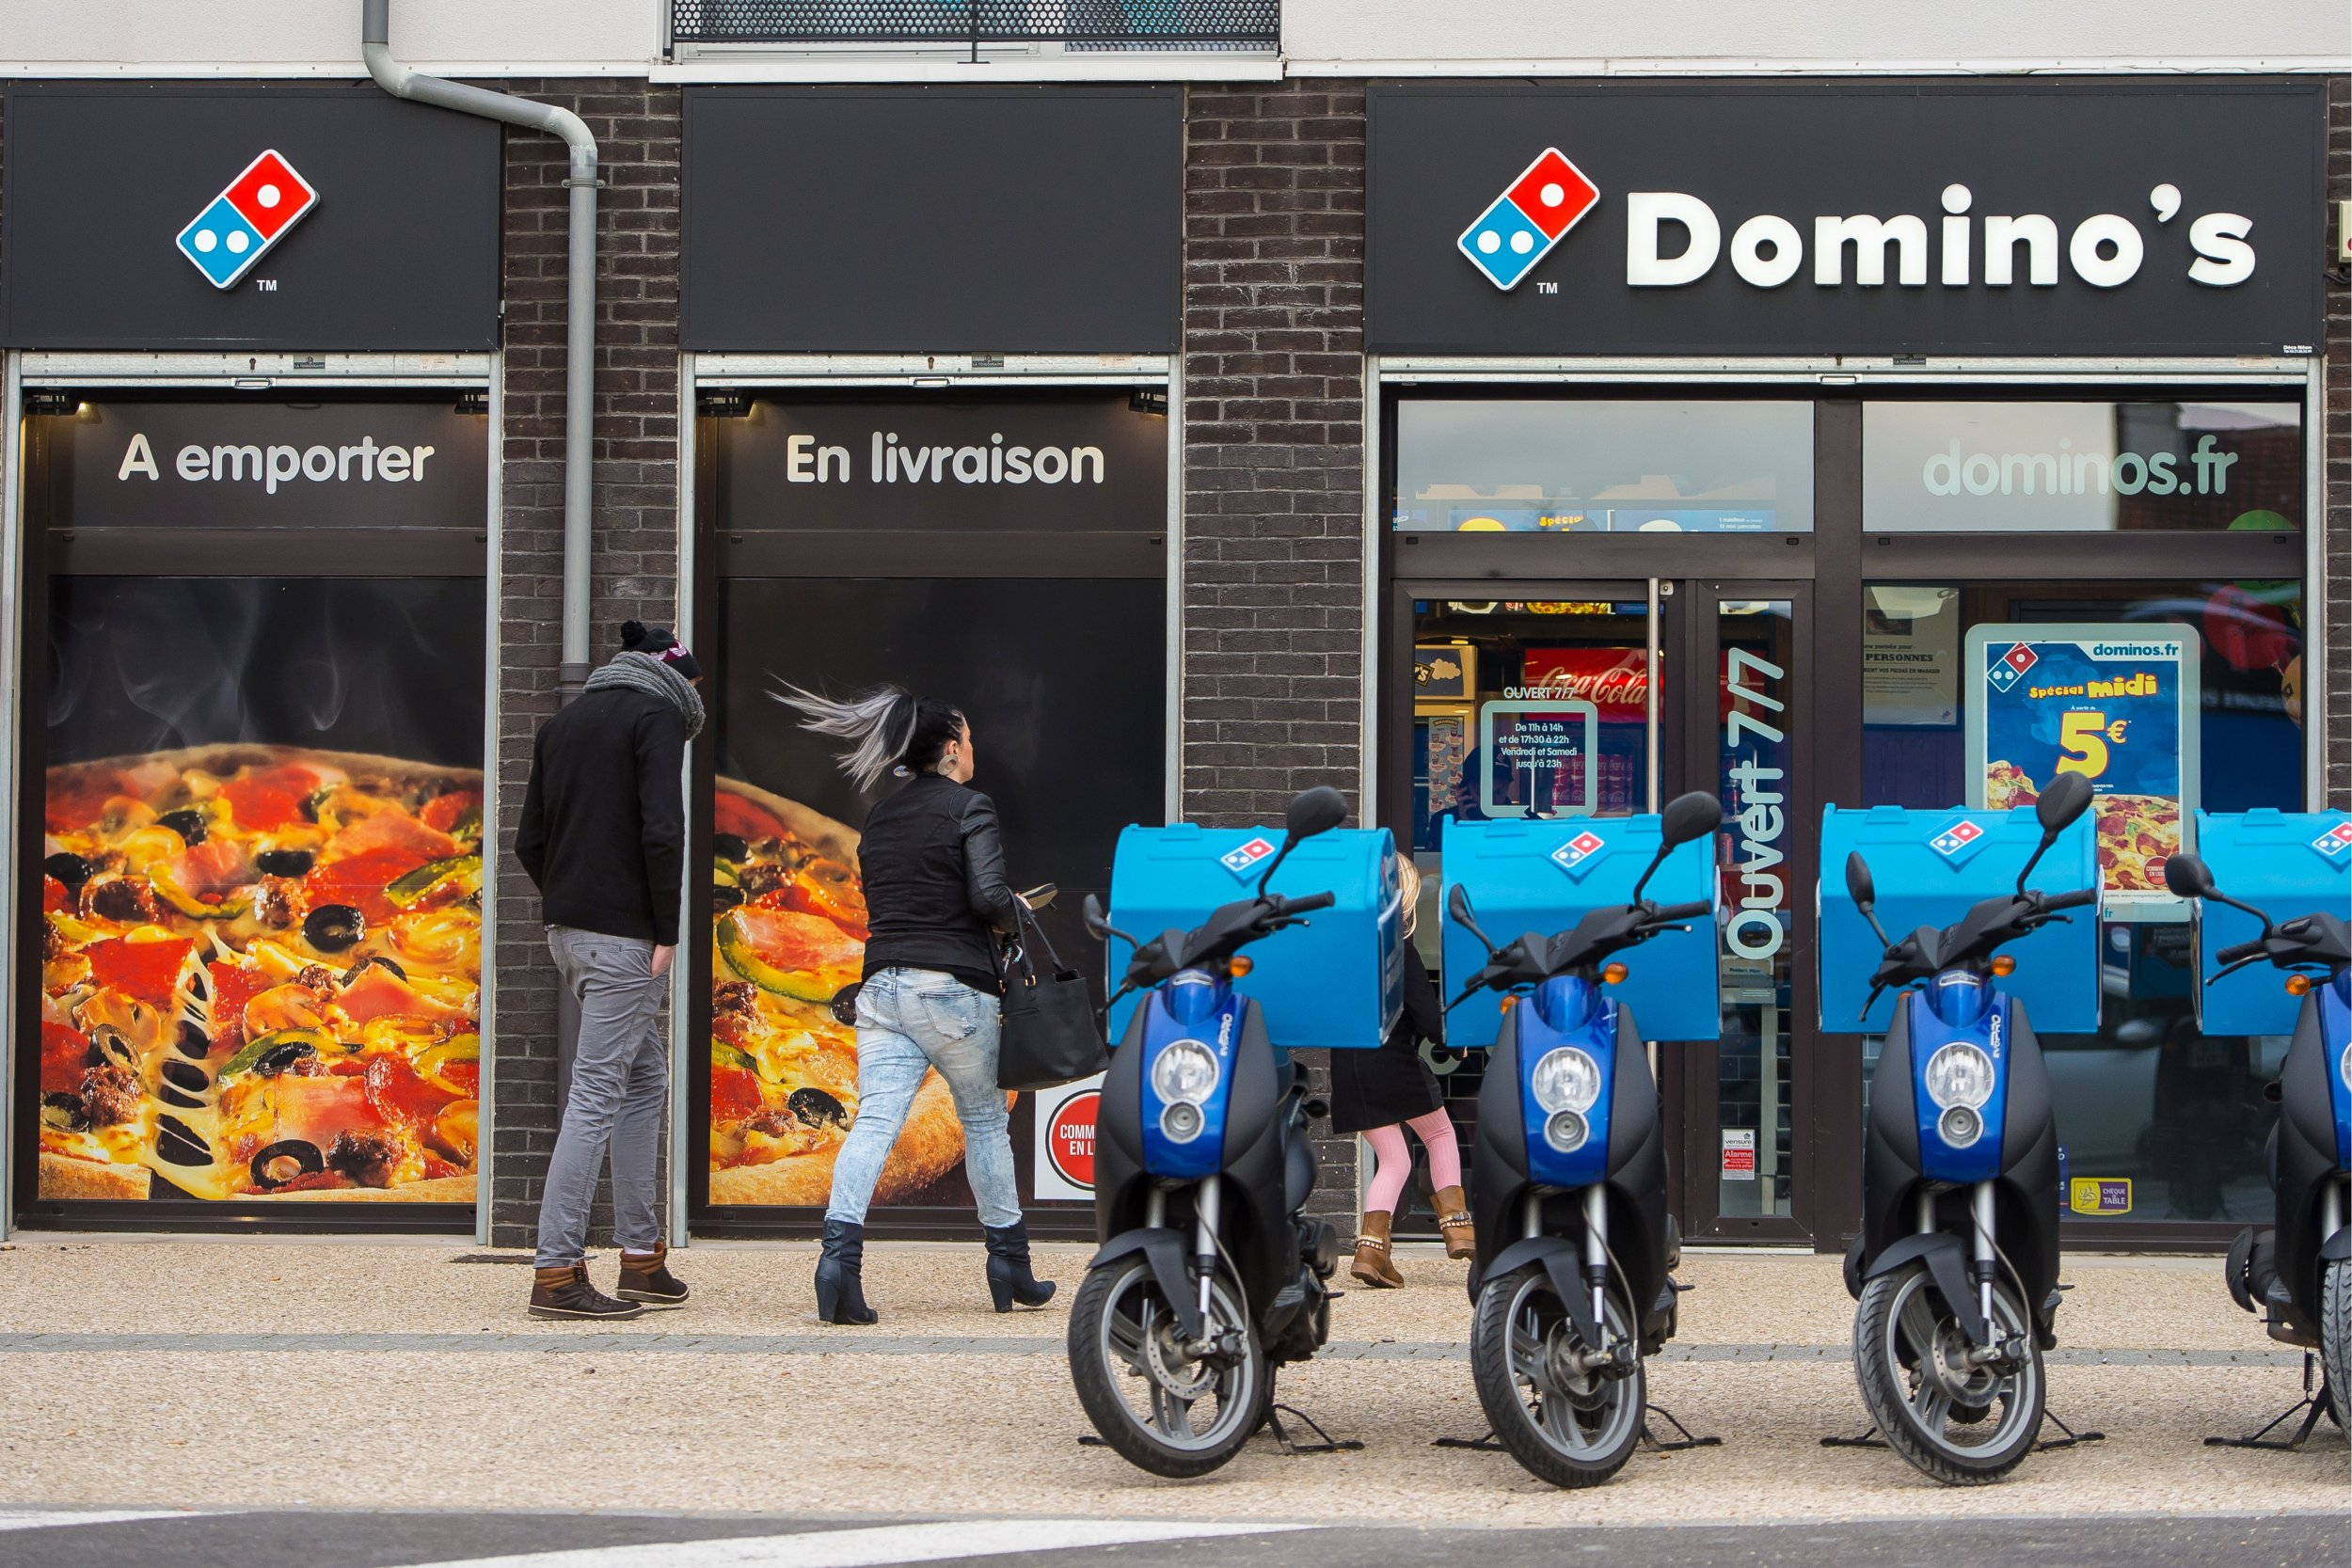 People Head For A Dominos Pizza Branch Calais France February 12 The Company Has Carried Out Worlds First Commercial Drone Delivery Of